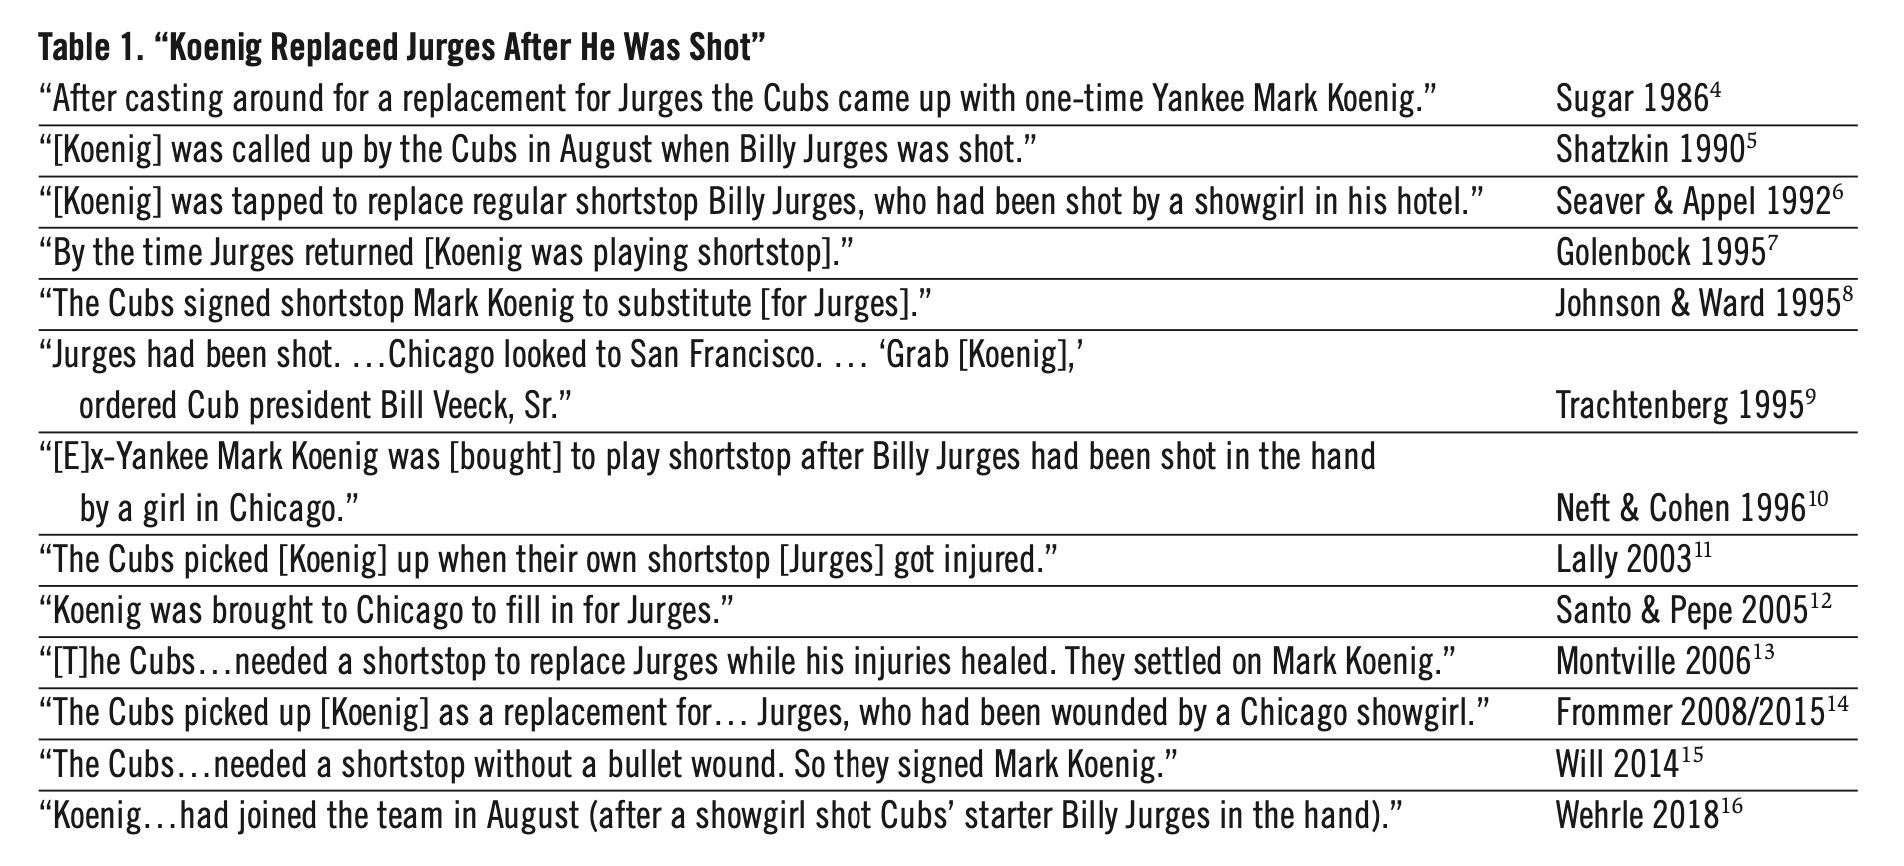 "Table 1. ""Koenig Replaced Jurges After He Was Shot"" (ROBERTS EHRGOTT)"